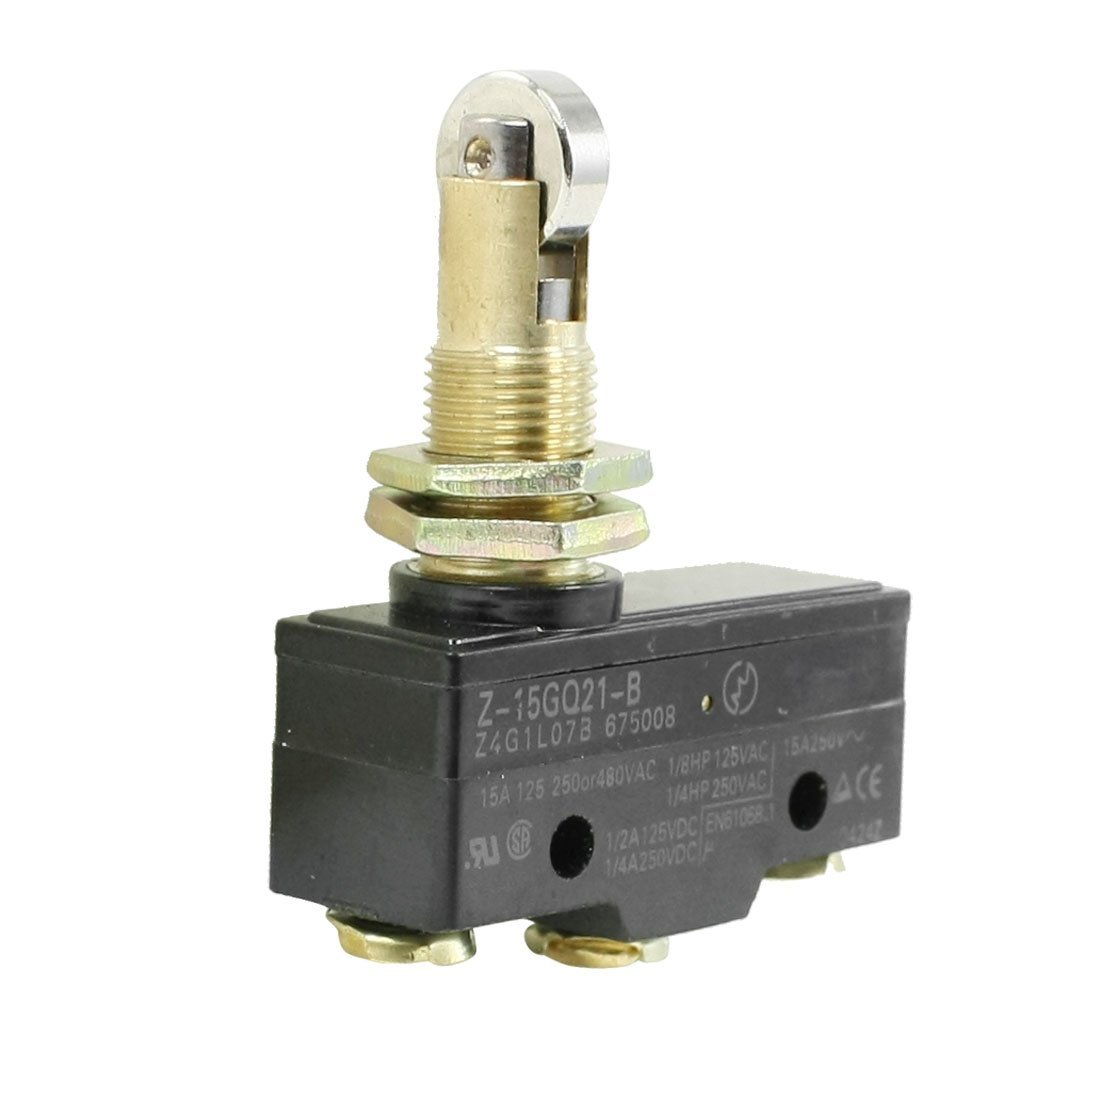 Roller Plunger Switch Lever Actuator Microswitch Spdt 5a Micro Ebay Panel Mount Cross No Basic Limit A 1100x1100